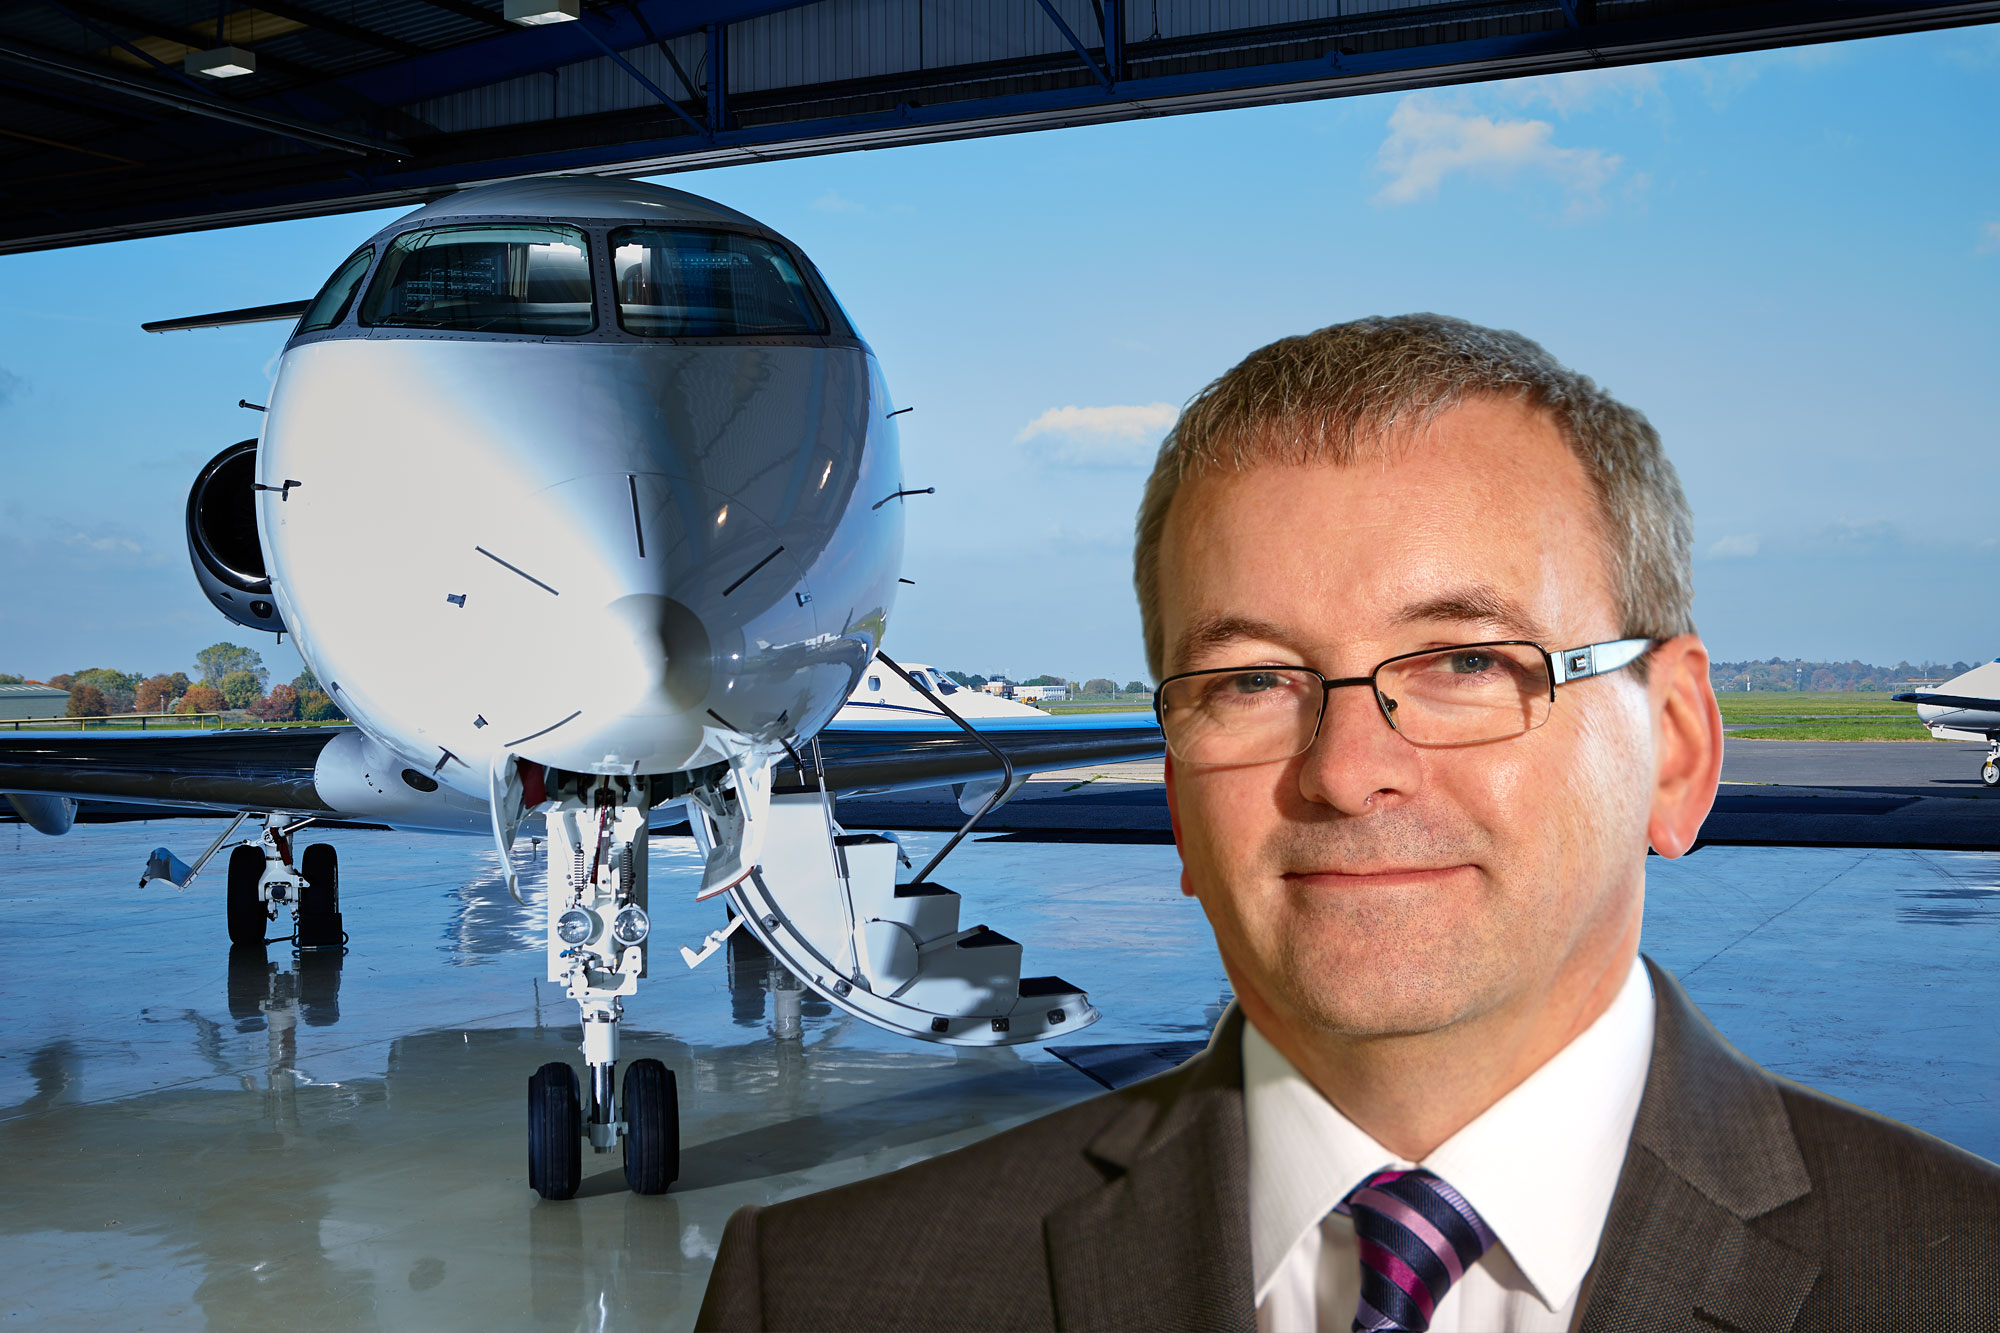 Stuart Mulholland, Managing Director Of Zenith Aviation